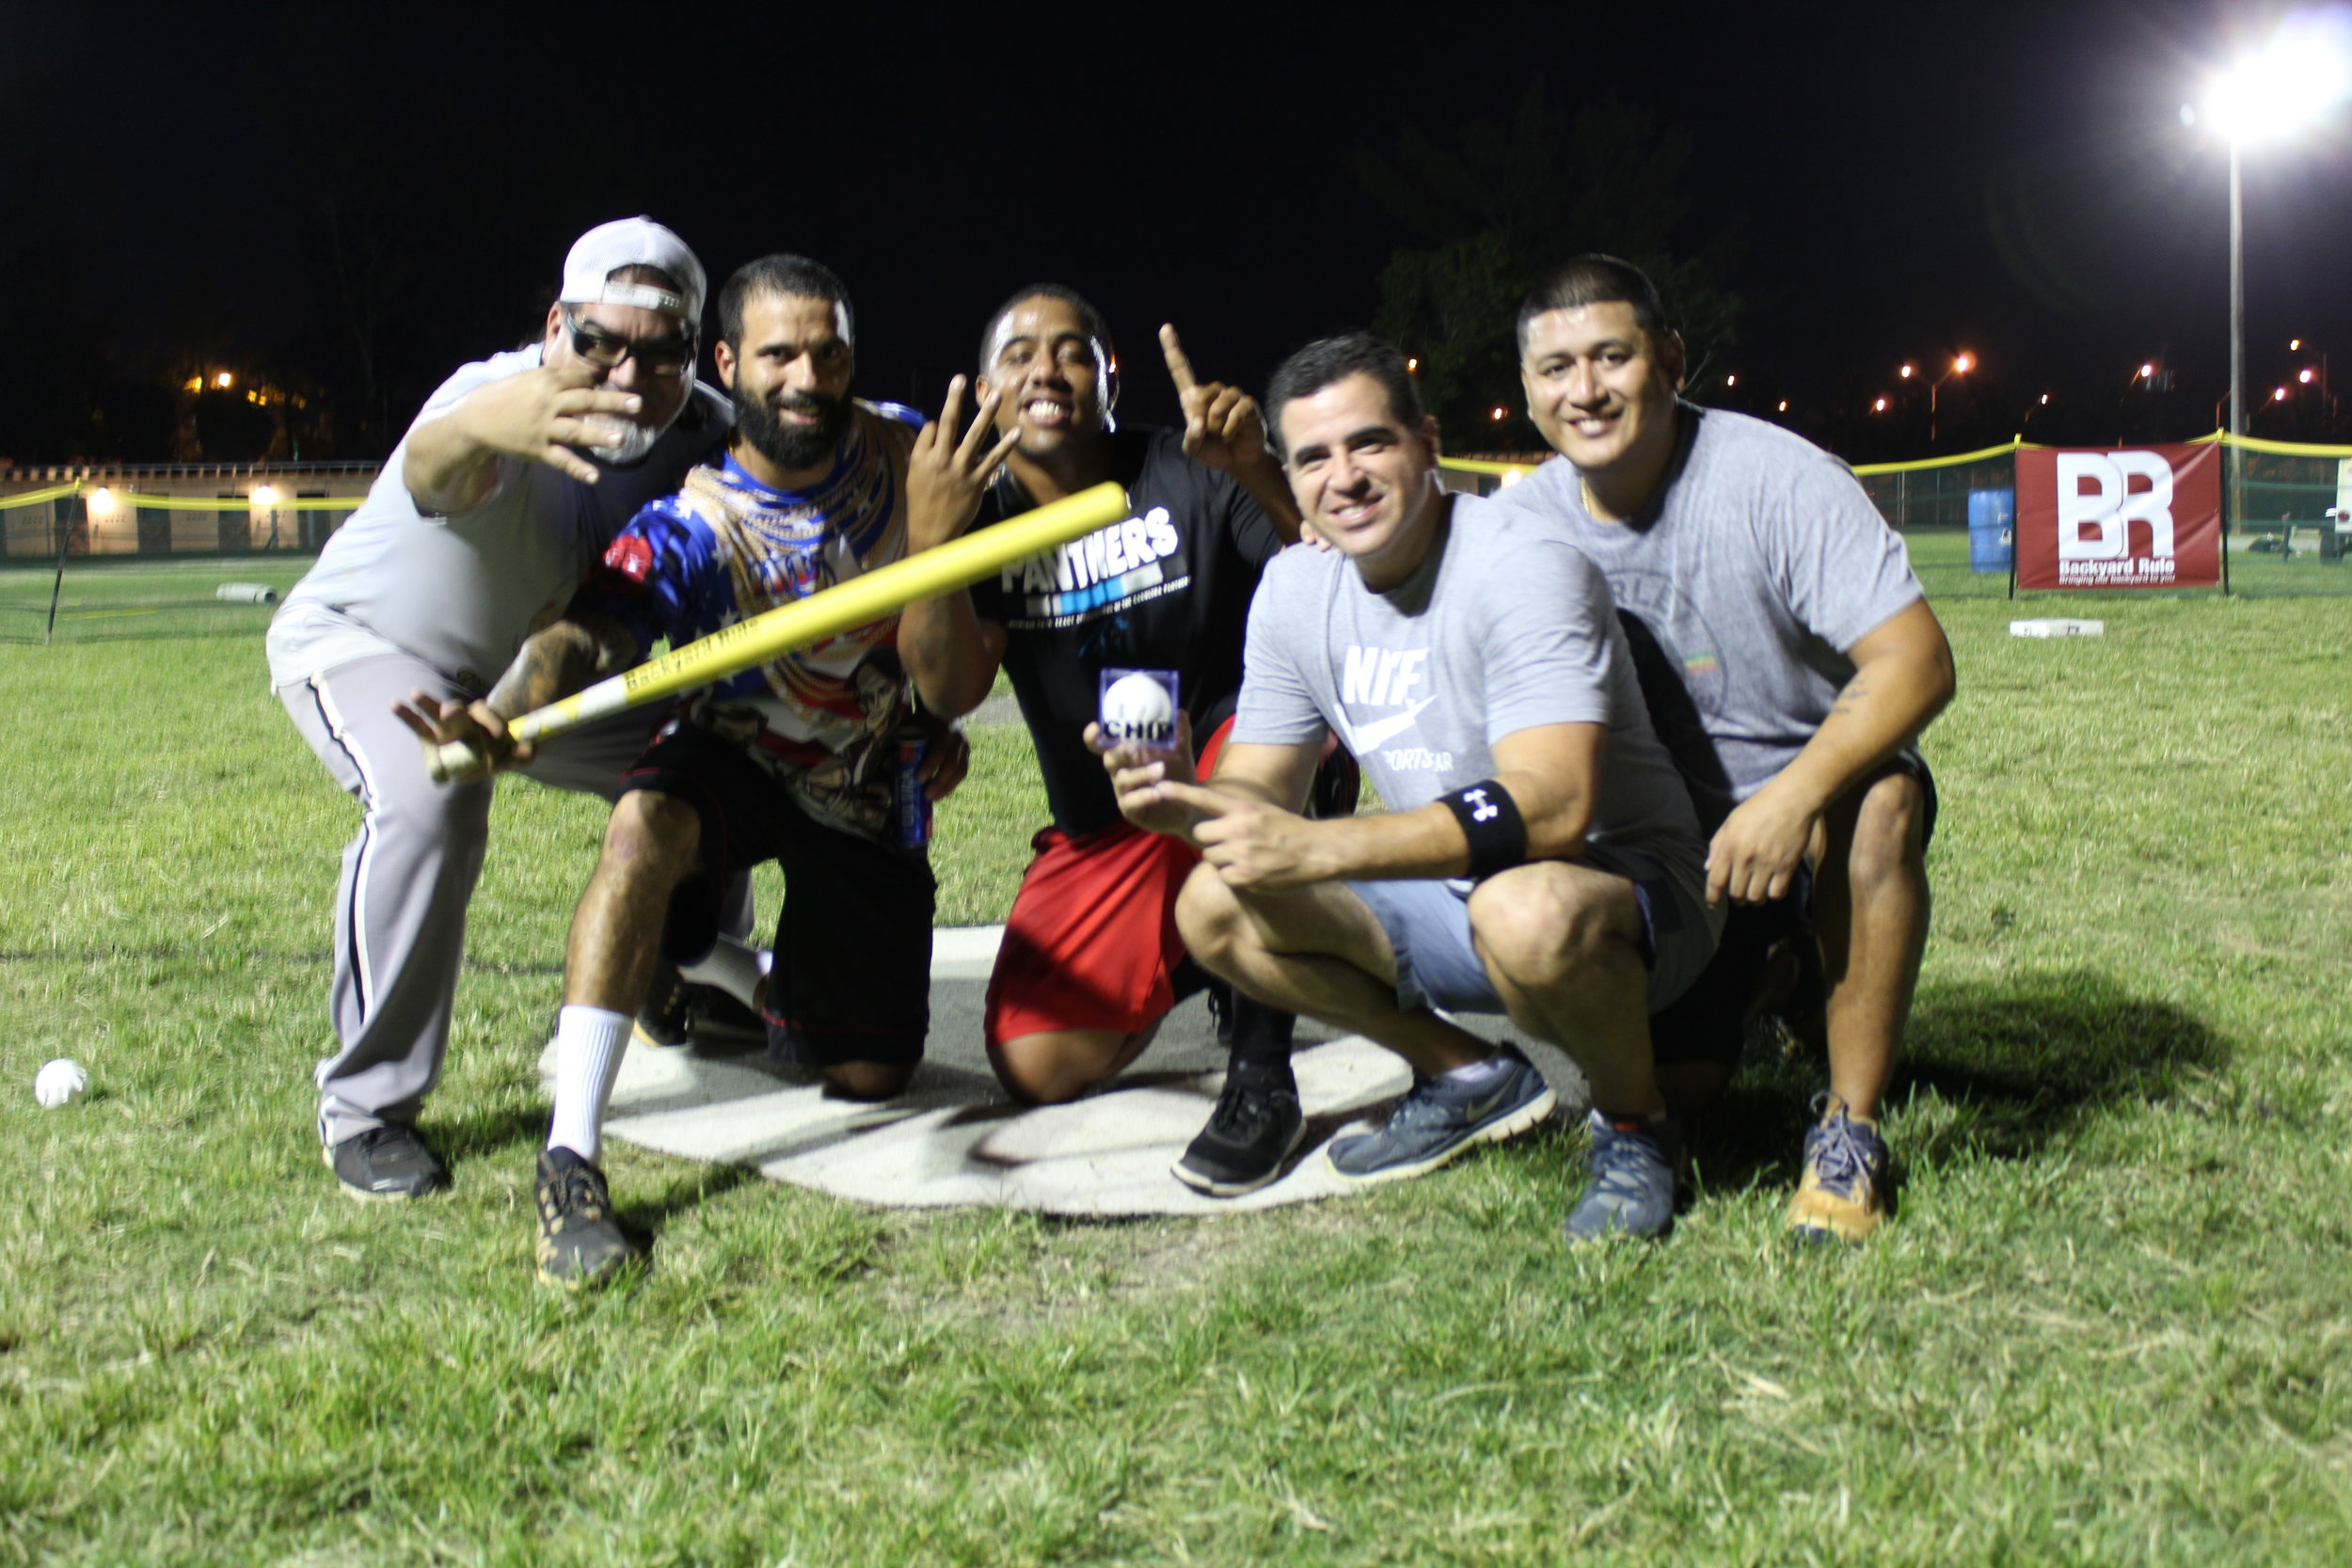 """Dirty South""  (from left to right): Manny Mondragon, Carlos Gonzalez, Ismael Scott, Alex Lopez, Treycia Arrieta"